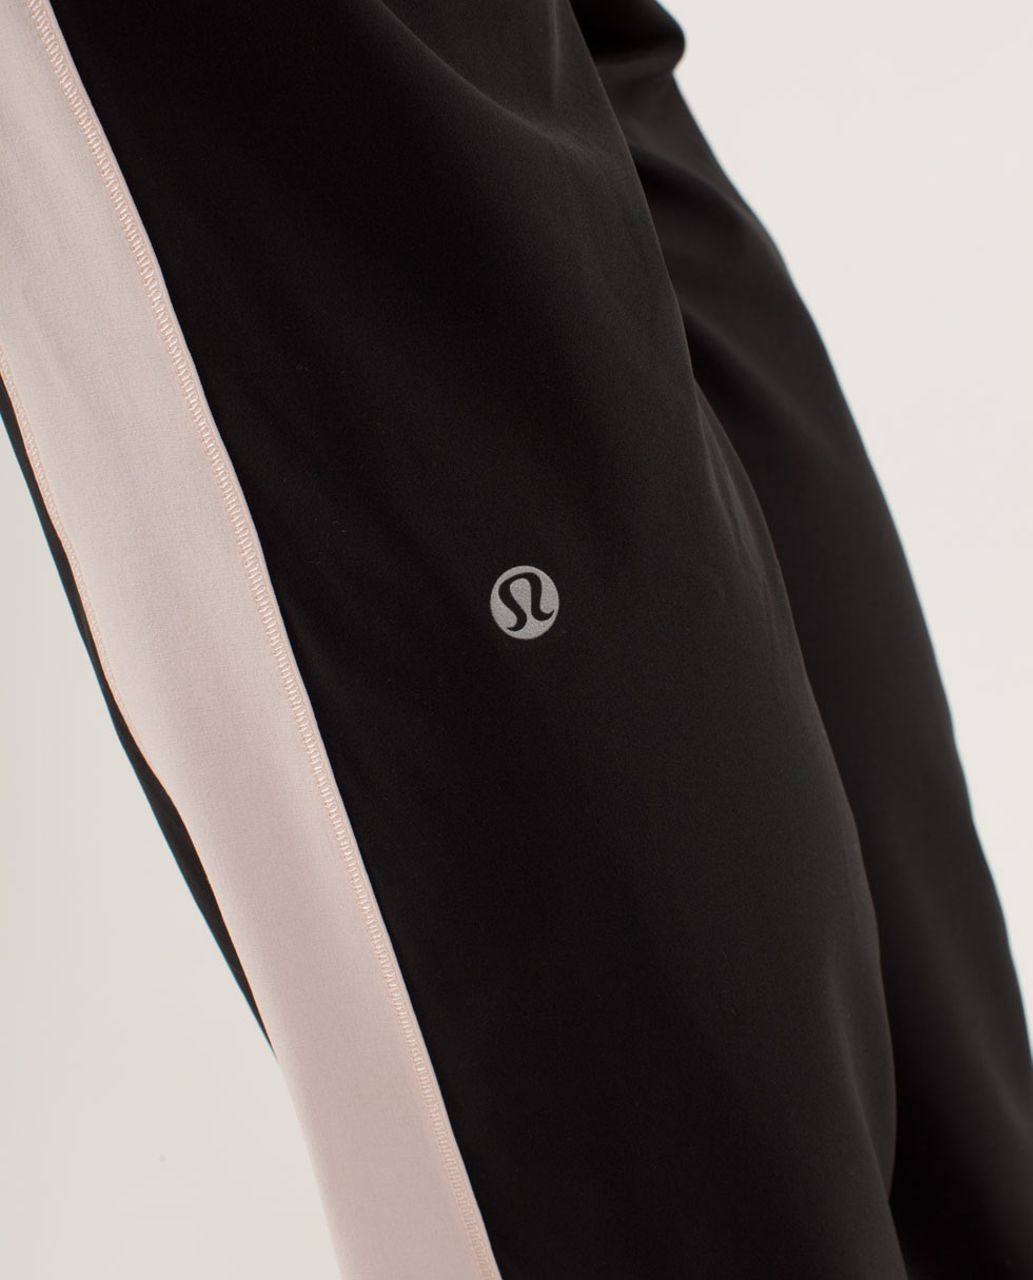 Lululemon Work It Out Track Pant - Black / Parfait Pink